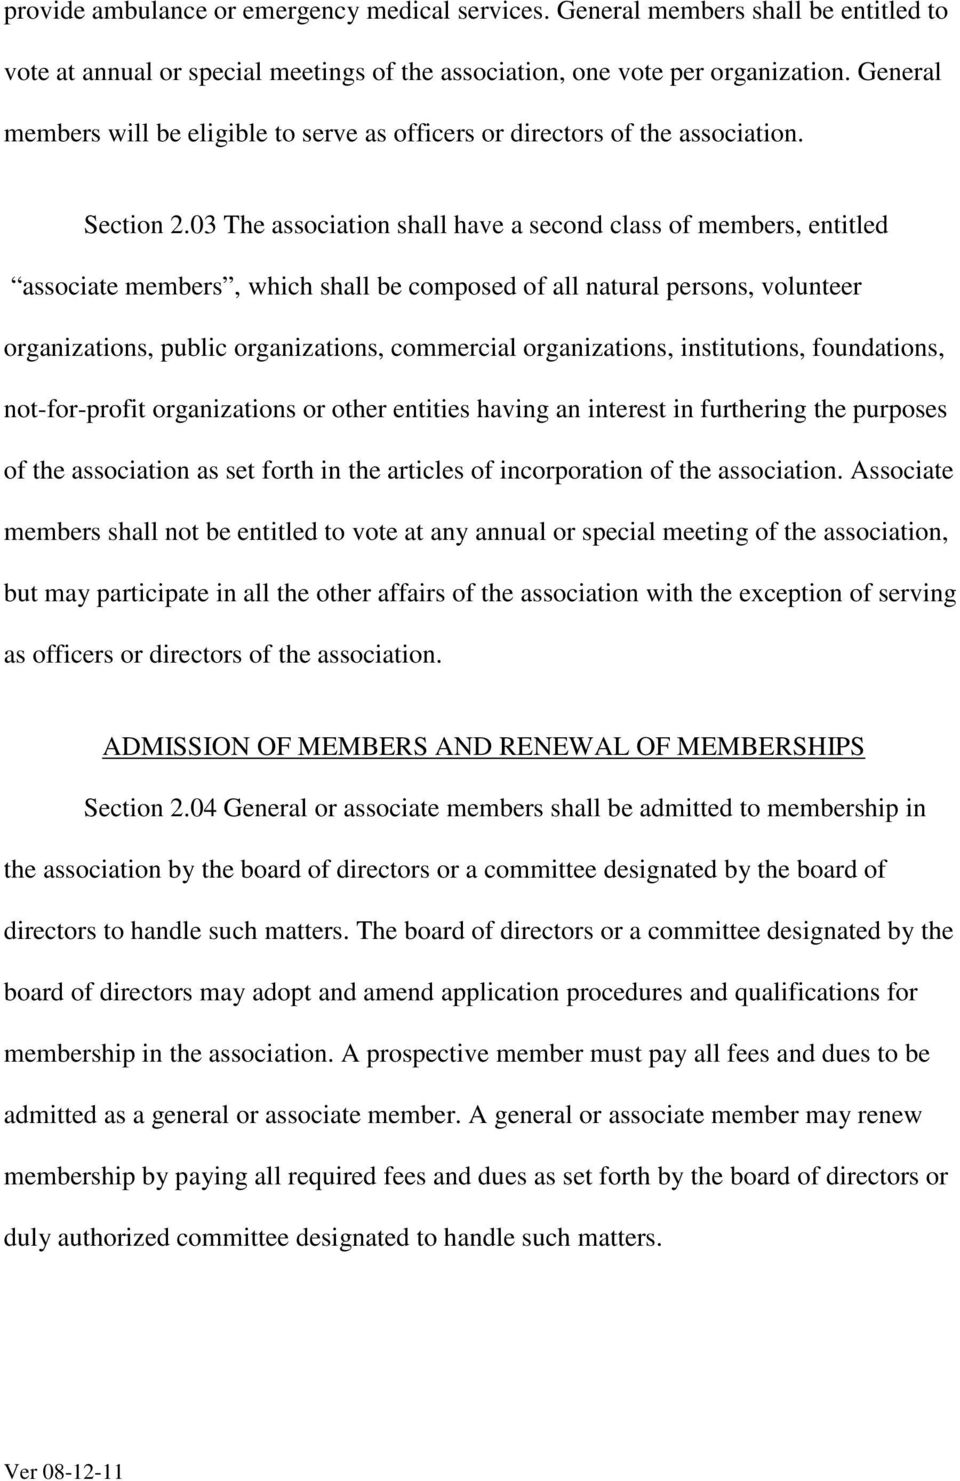 03 The association shall have a second class of members, entitled associate members, which shall be composed of all natural persons, volunteer organizations, public organizations, commercial